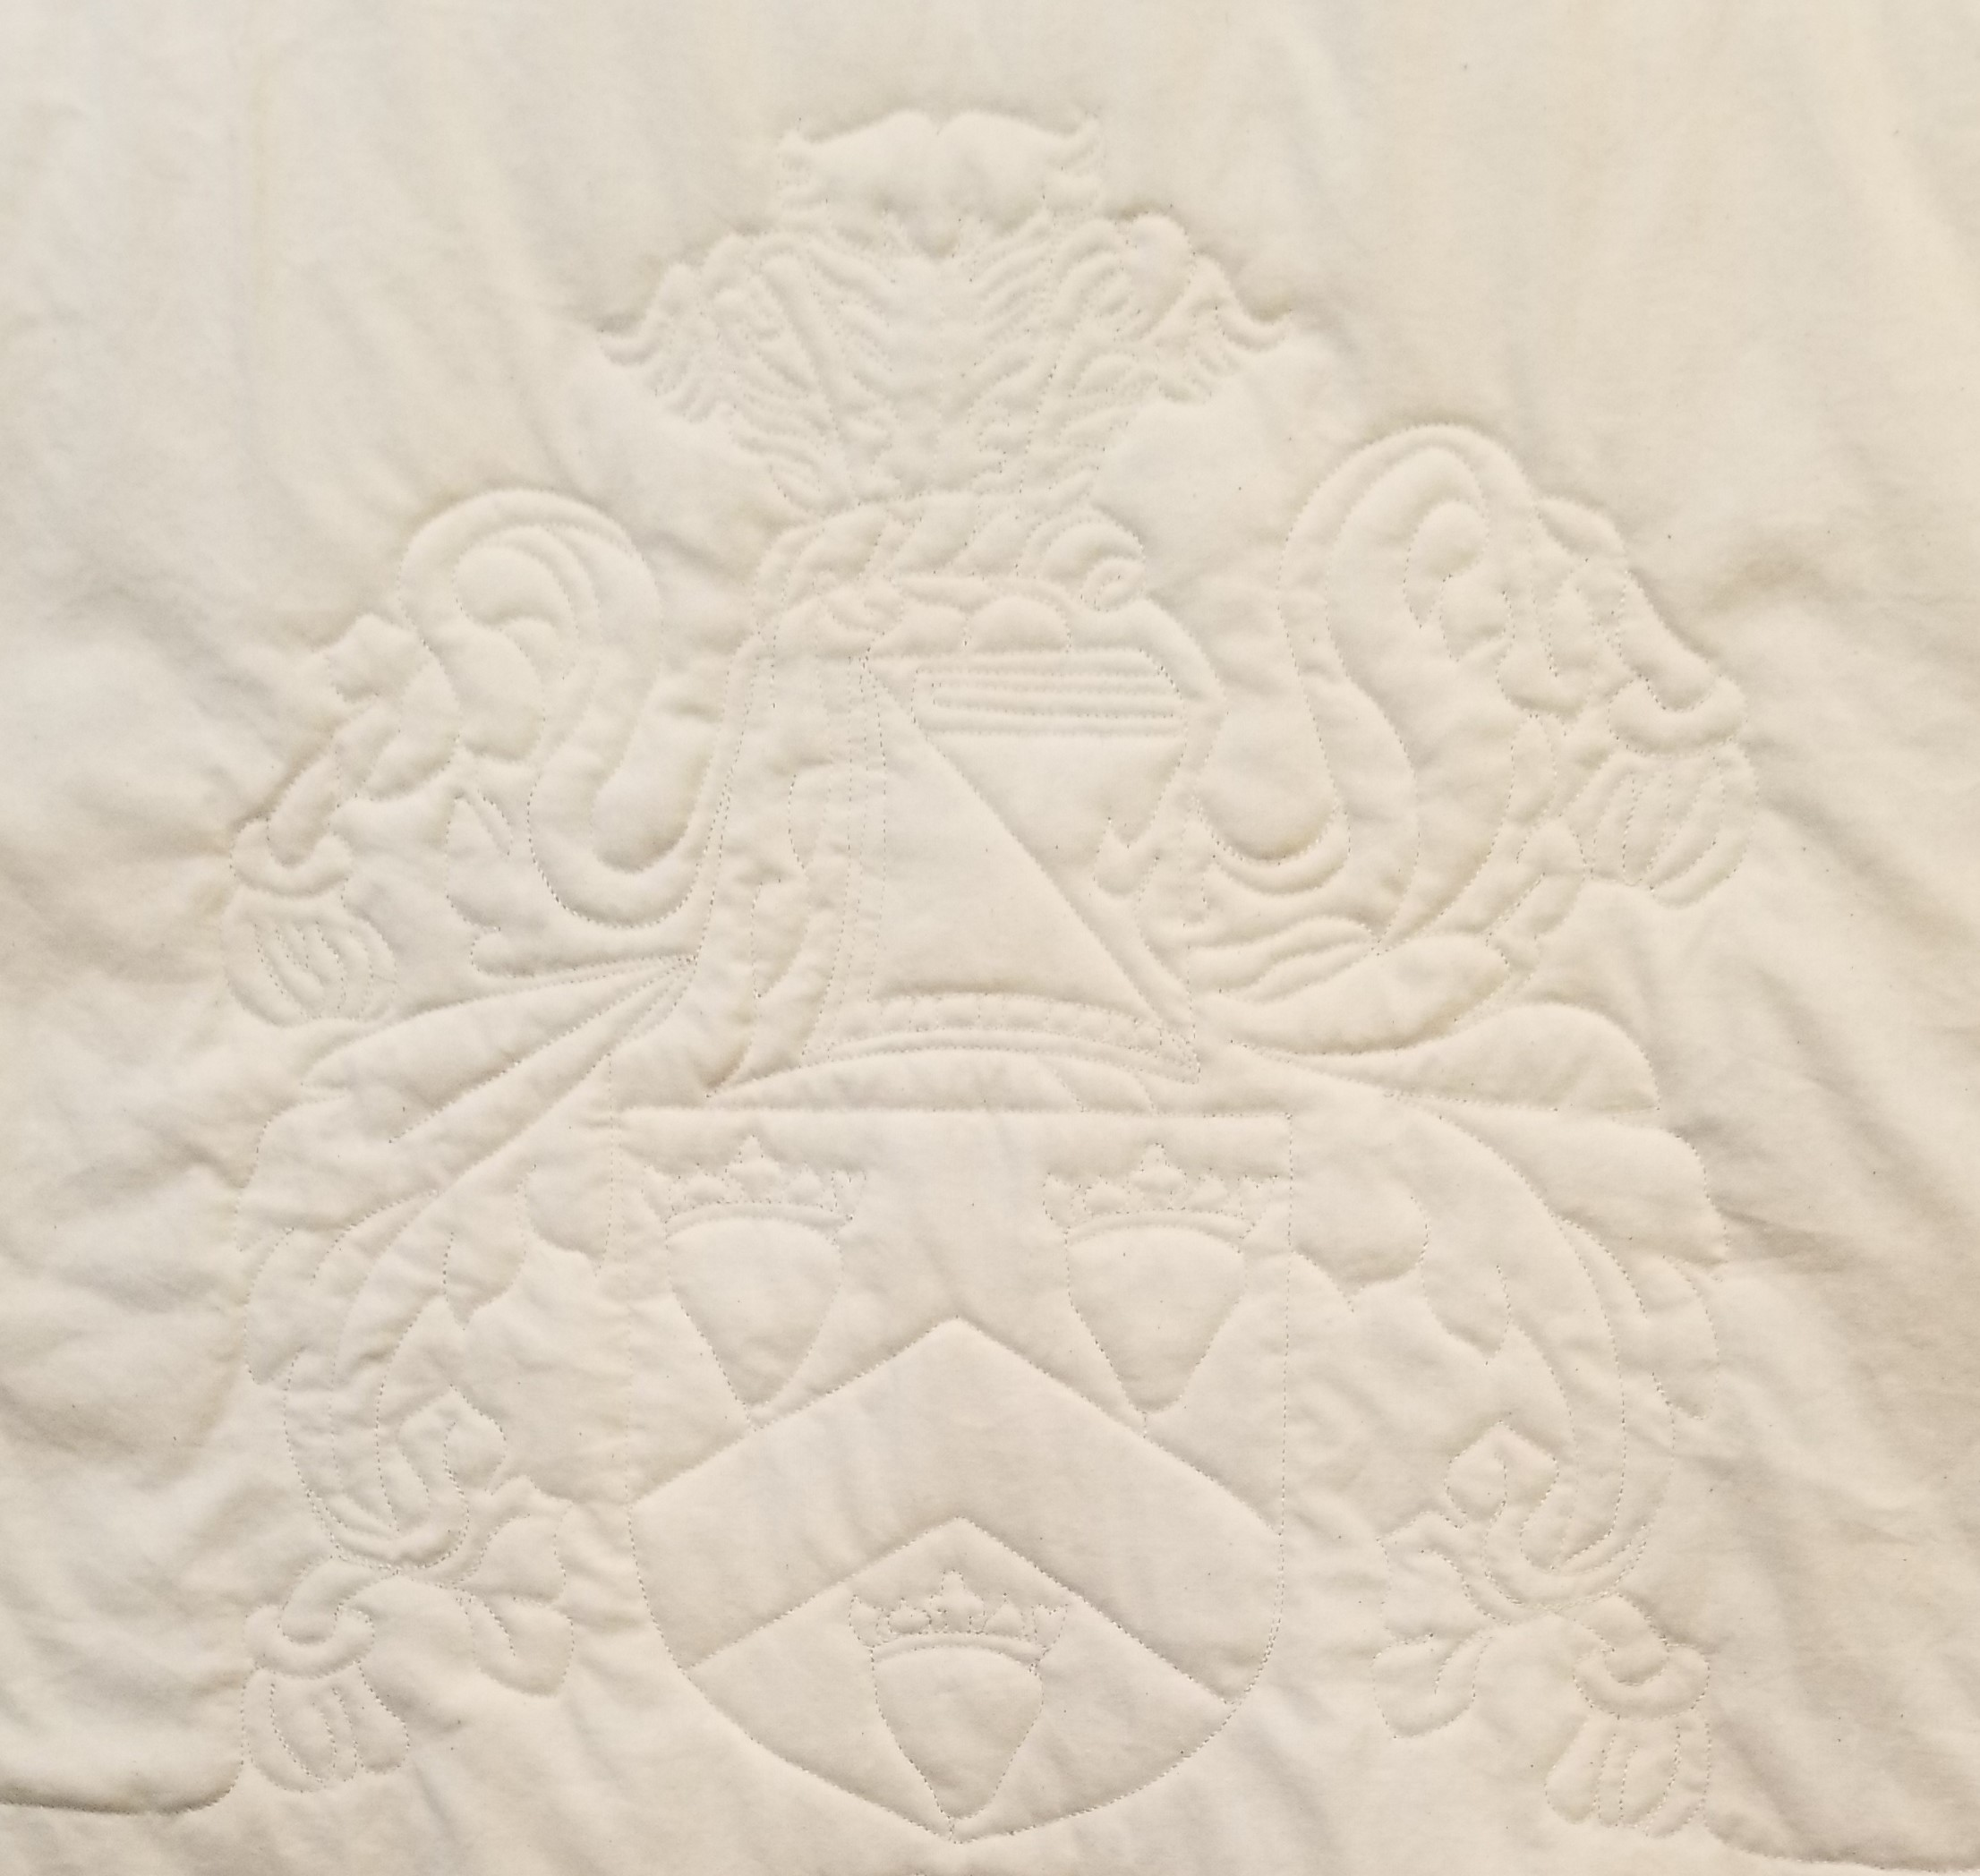 Beth's family crest replicated on her quilt.